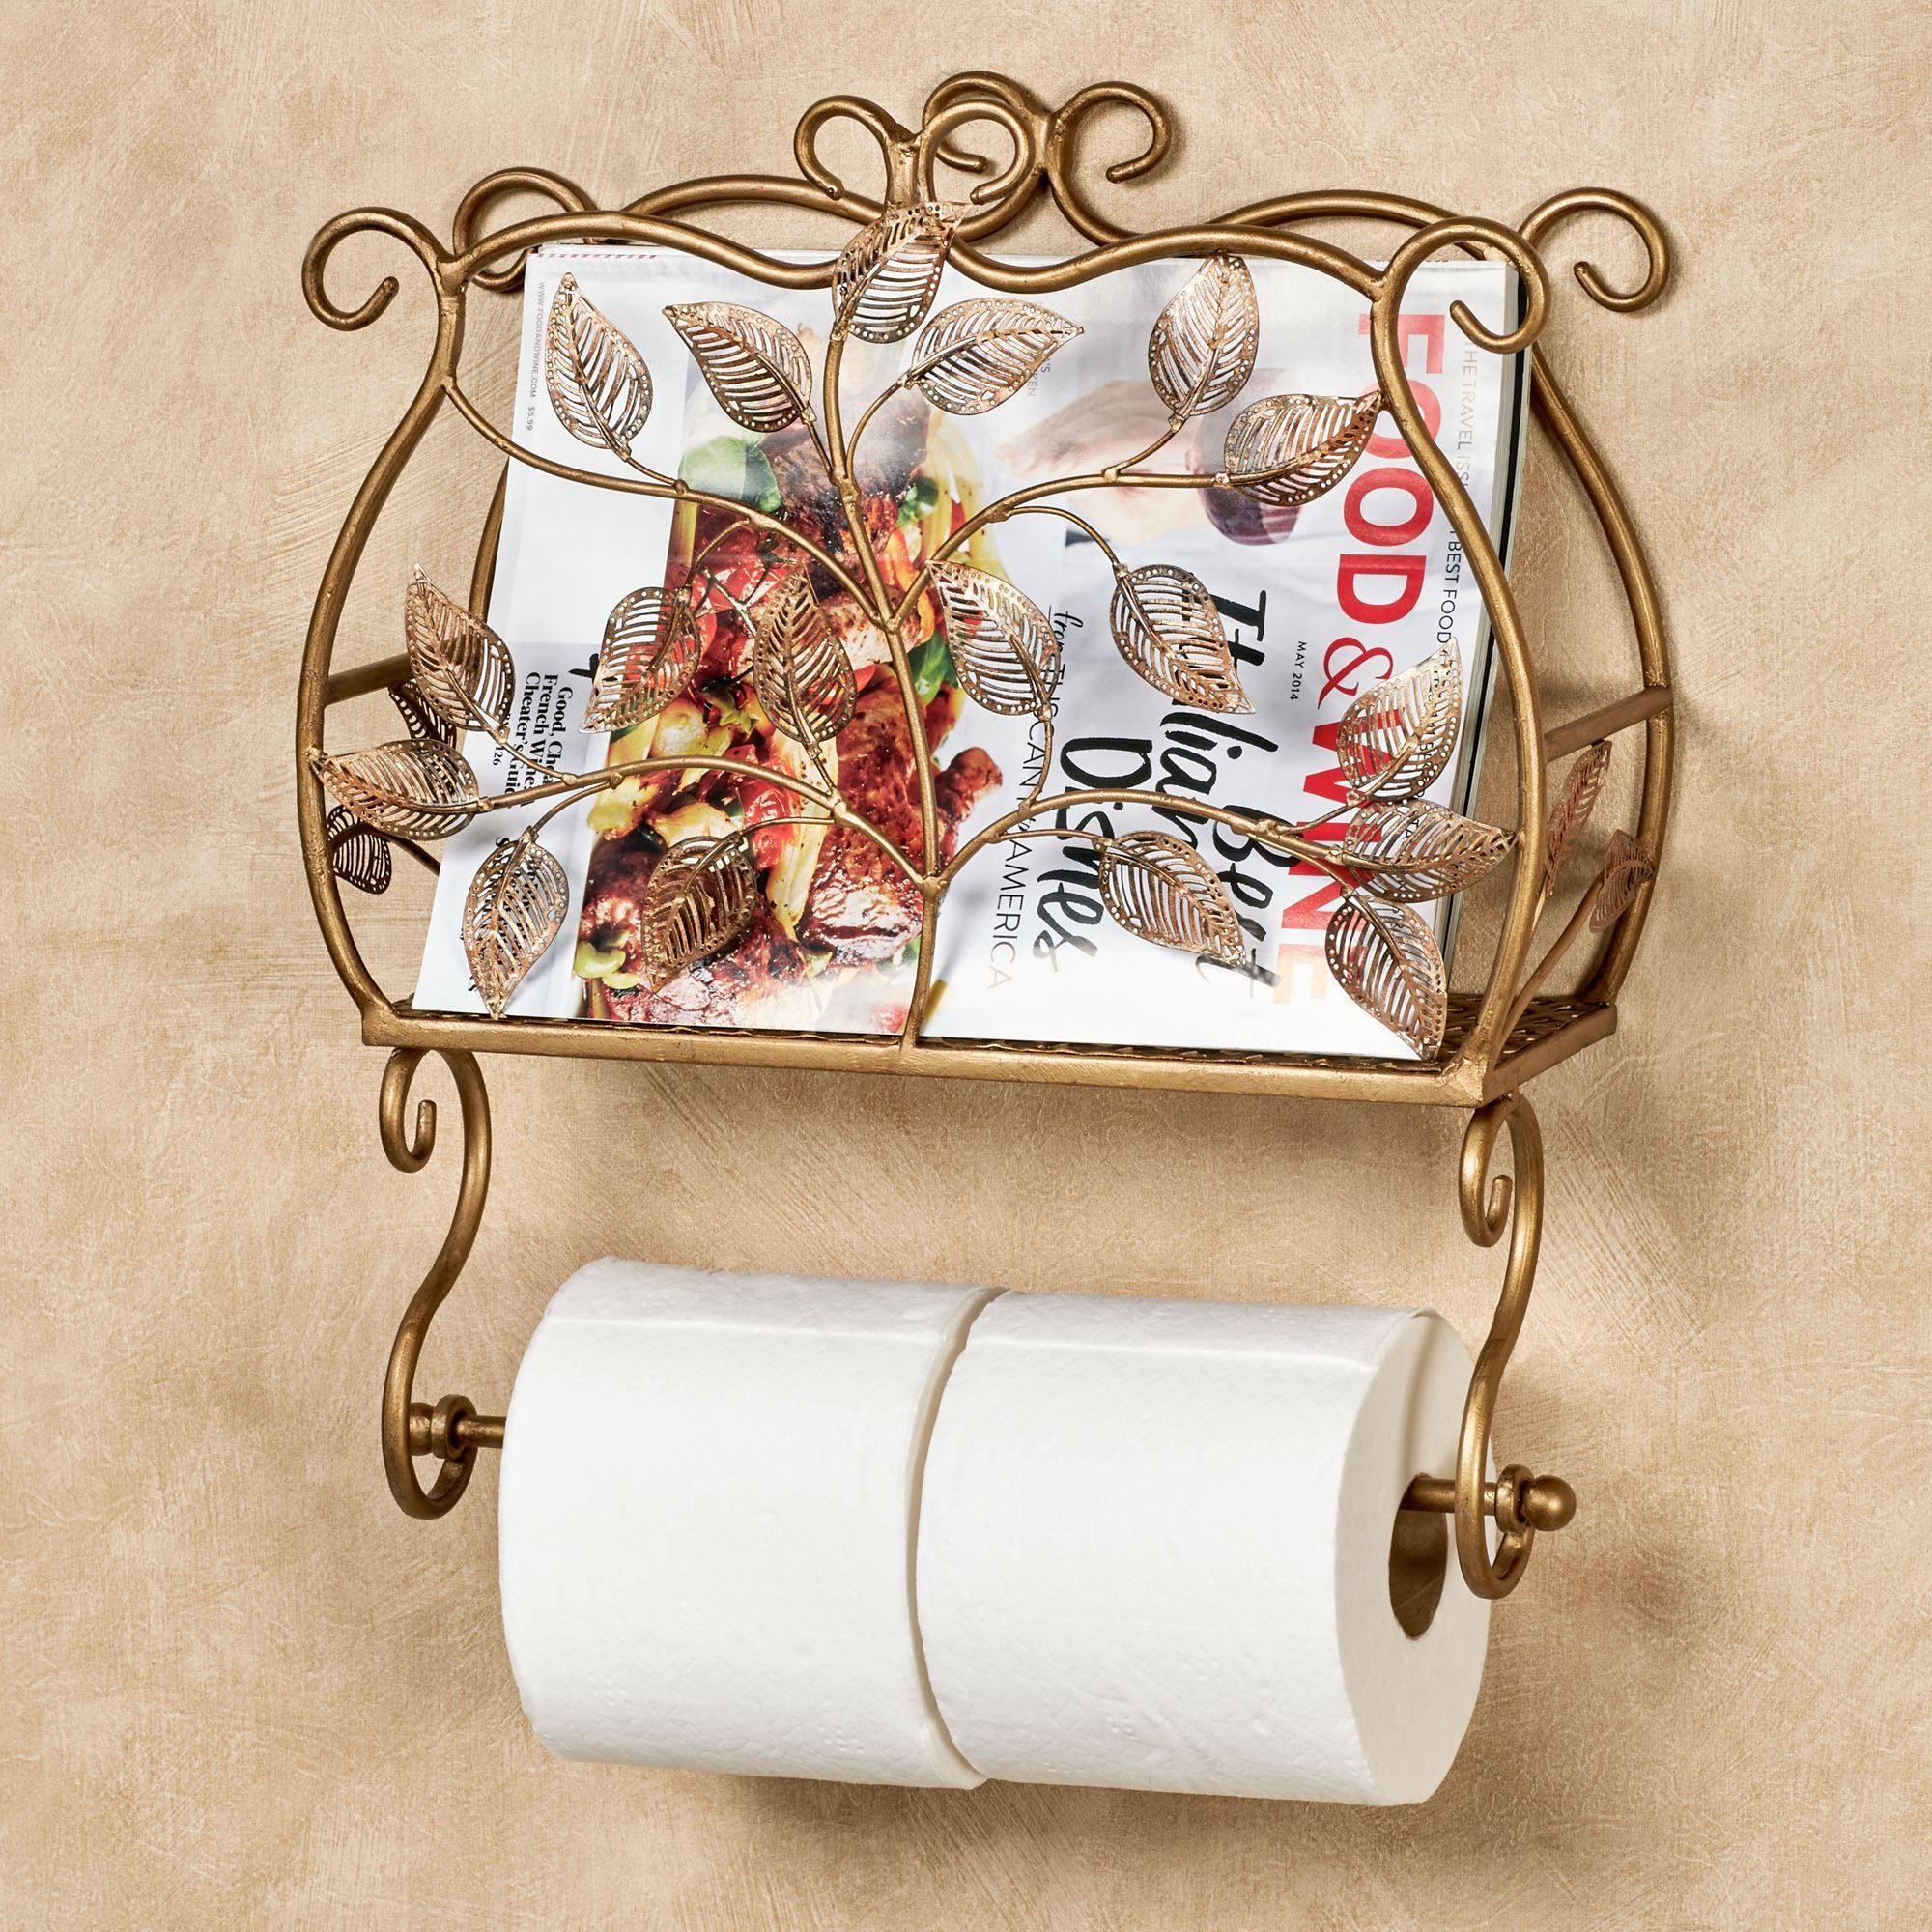 Eden Wall Toilet Paper Holder And Magazine Rack Toilet Paper Holder Toilet Paper Decorating Bathroom